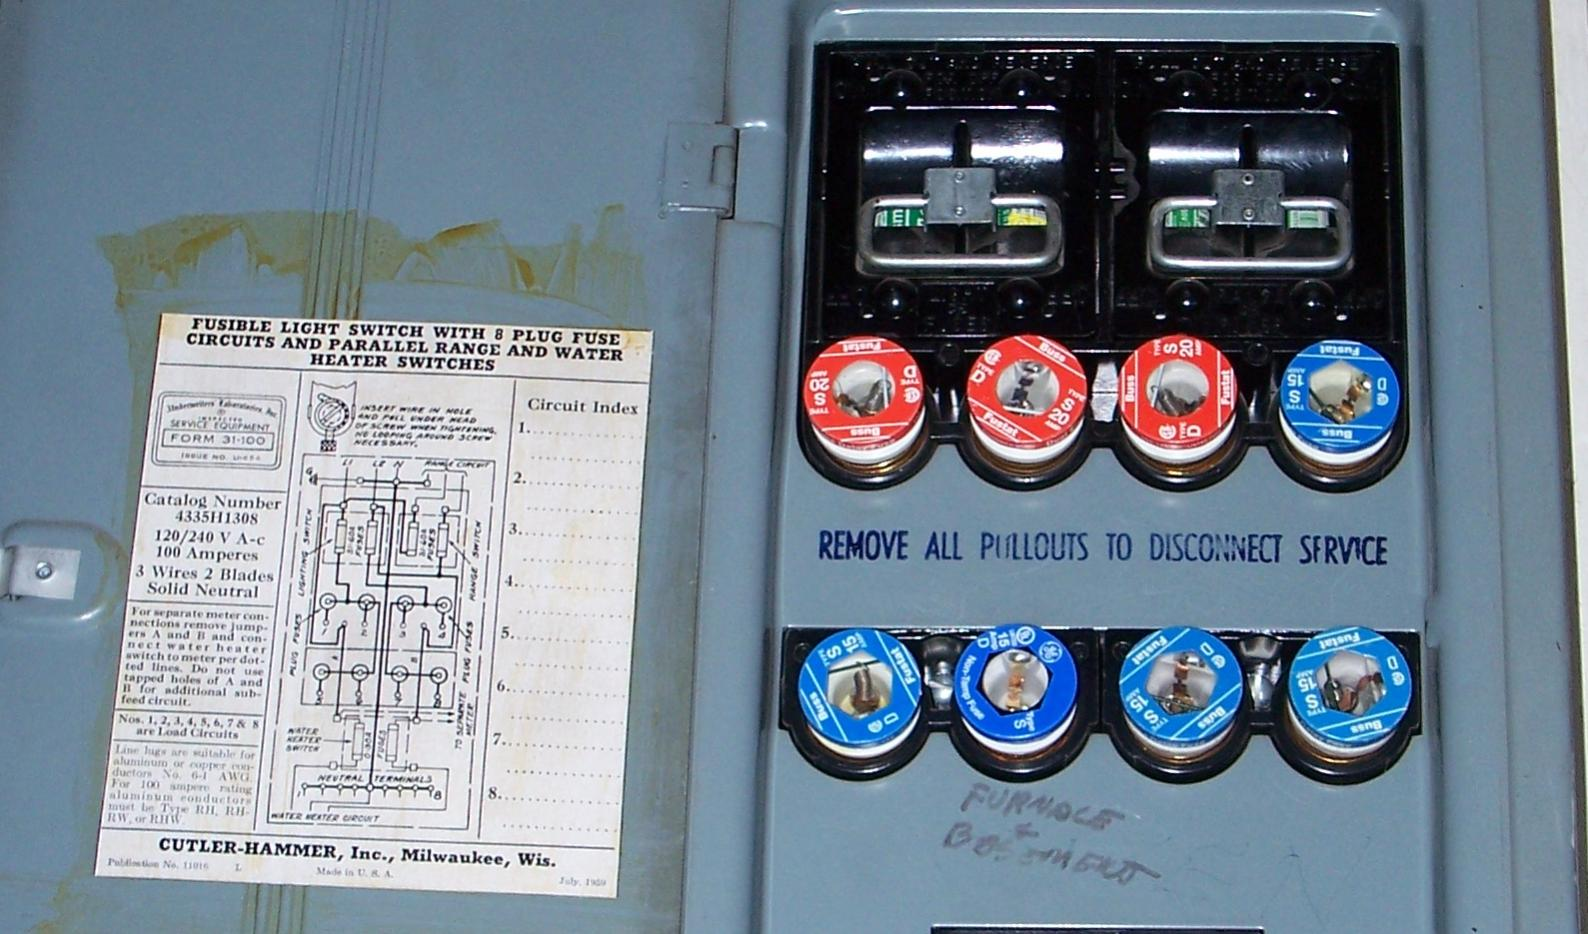 How many amps does this fuse box have ridgid plumbing